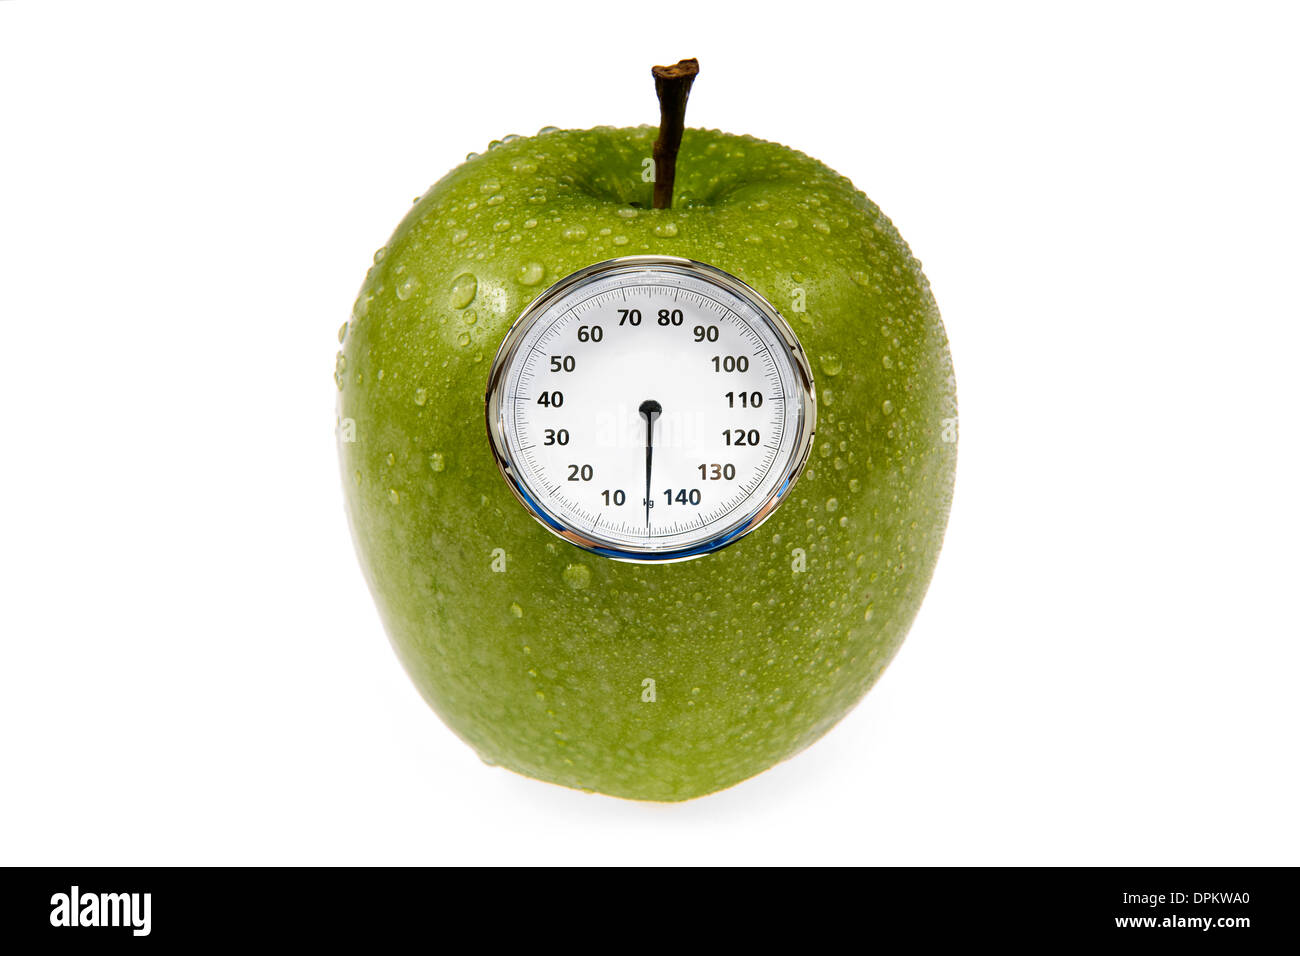 An apple with a weight scale on it - Stock Image